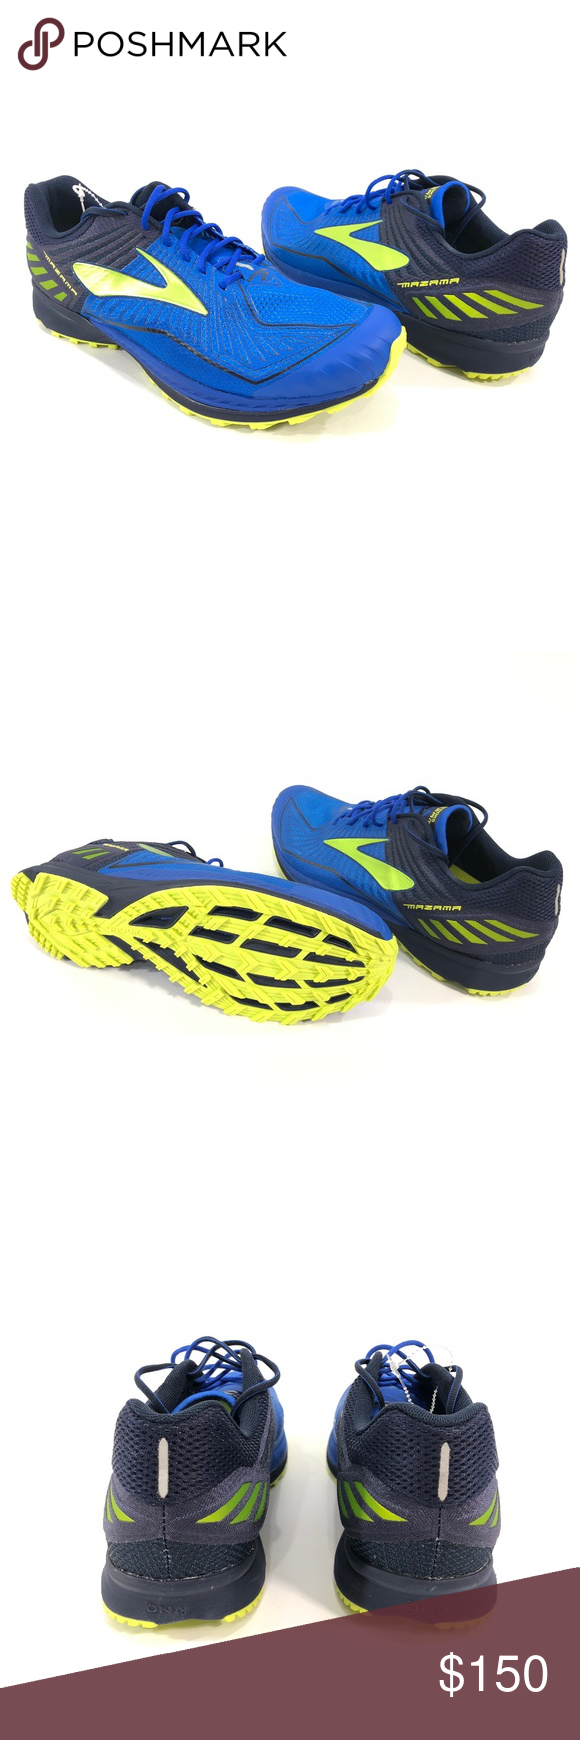 a7e8968faf6 Brooks Mazama Men s Trail Running Training Shoes BROOKS Brooks Mazama Men s  running shoes Size 11 Blue   Yellow Low top New without box 32BM802 Brooks  Shoes ...